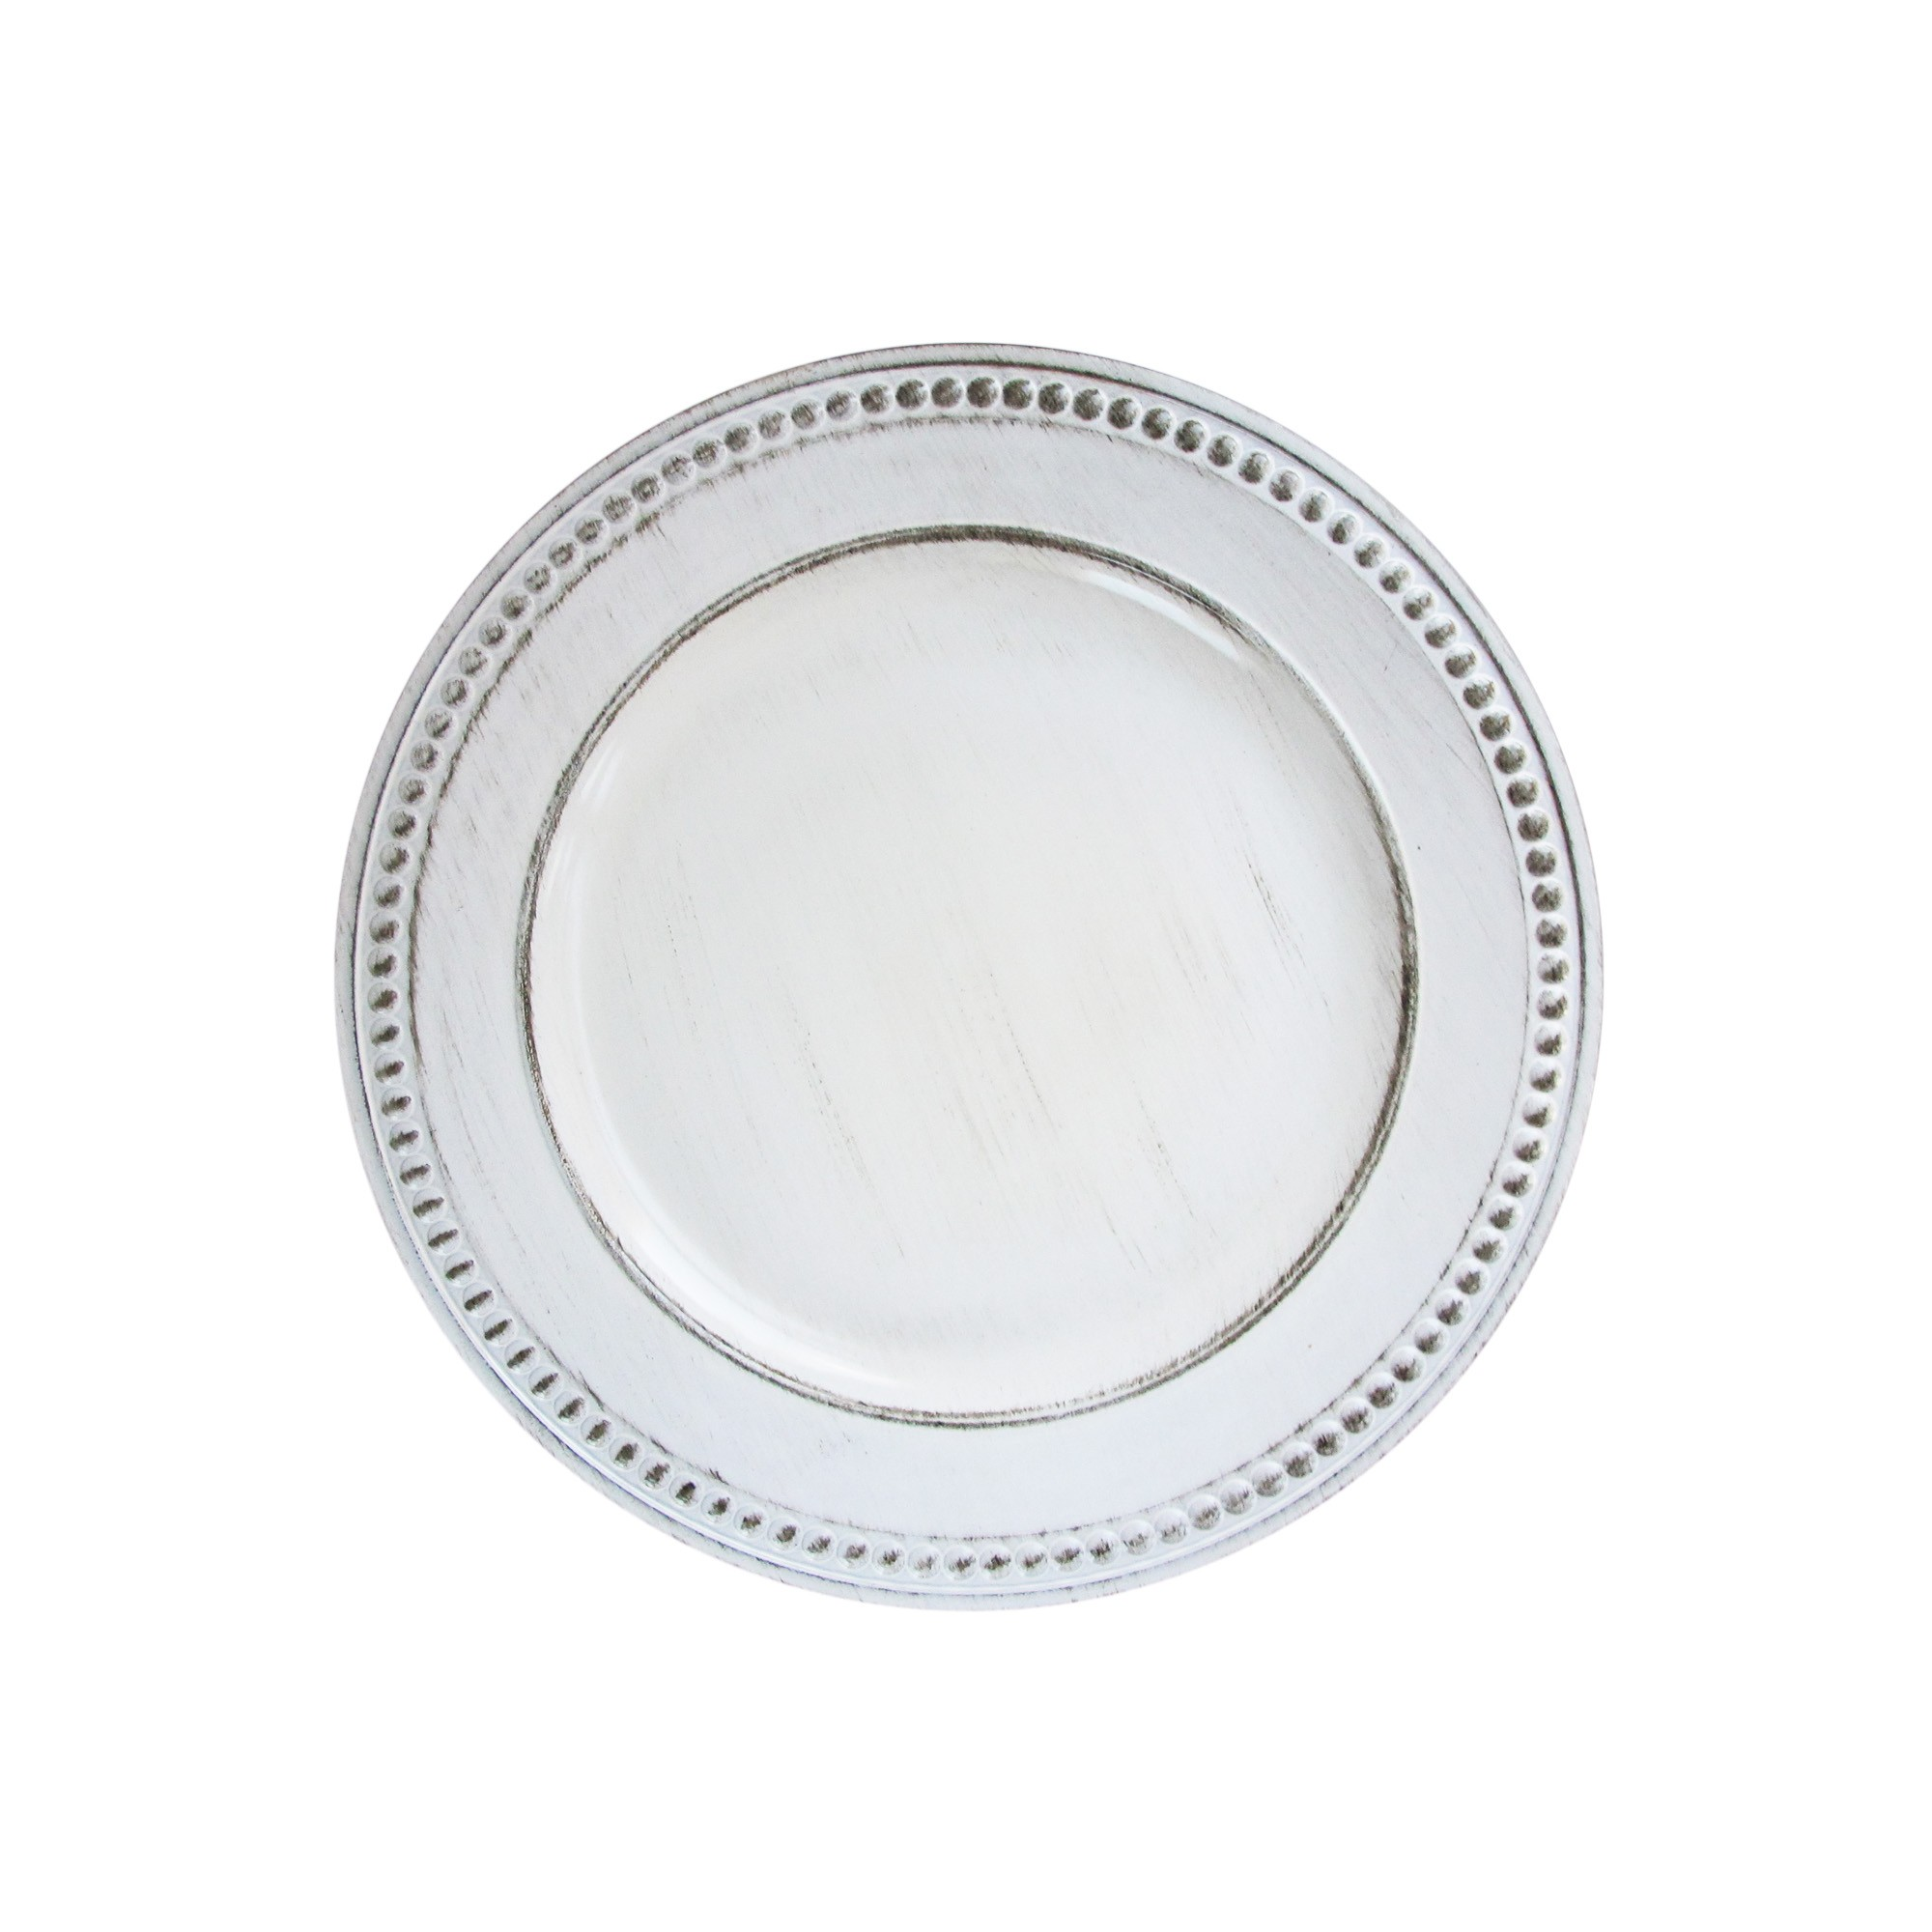 "Jay Import 1270281 Beaded White Antique 14"" Charger Plate"